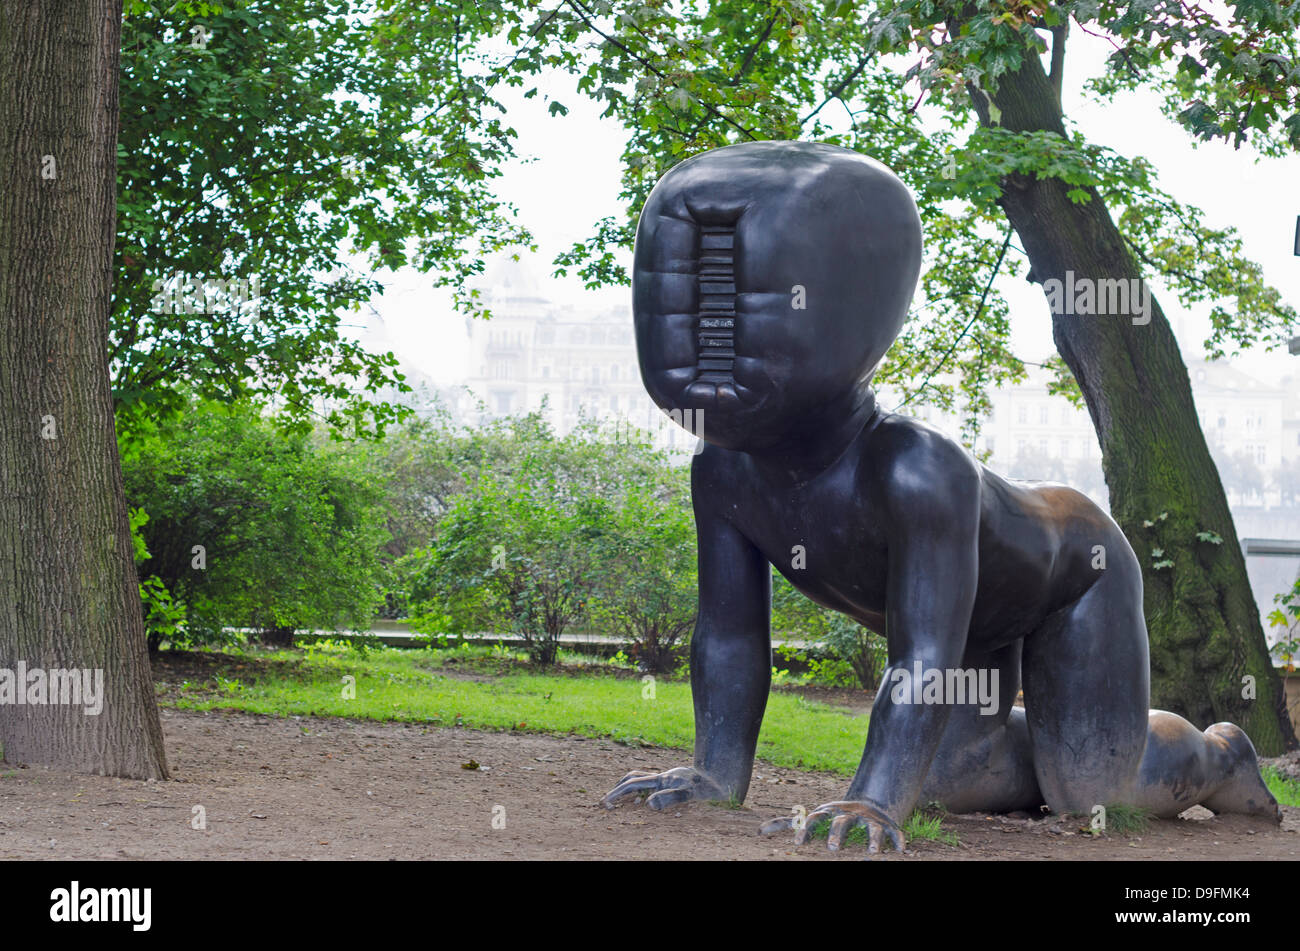 Babies statue by David Cerny at the Kampa Art Museum, Prague, Czech Republic - Stock Image